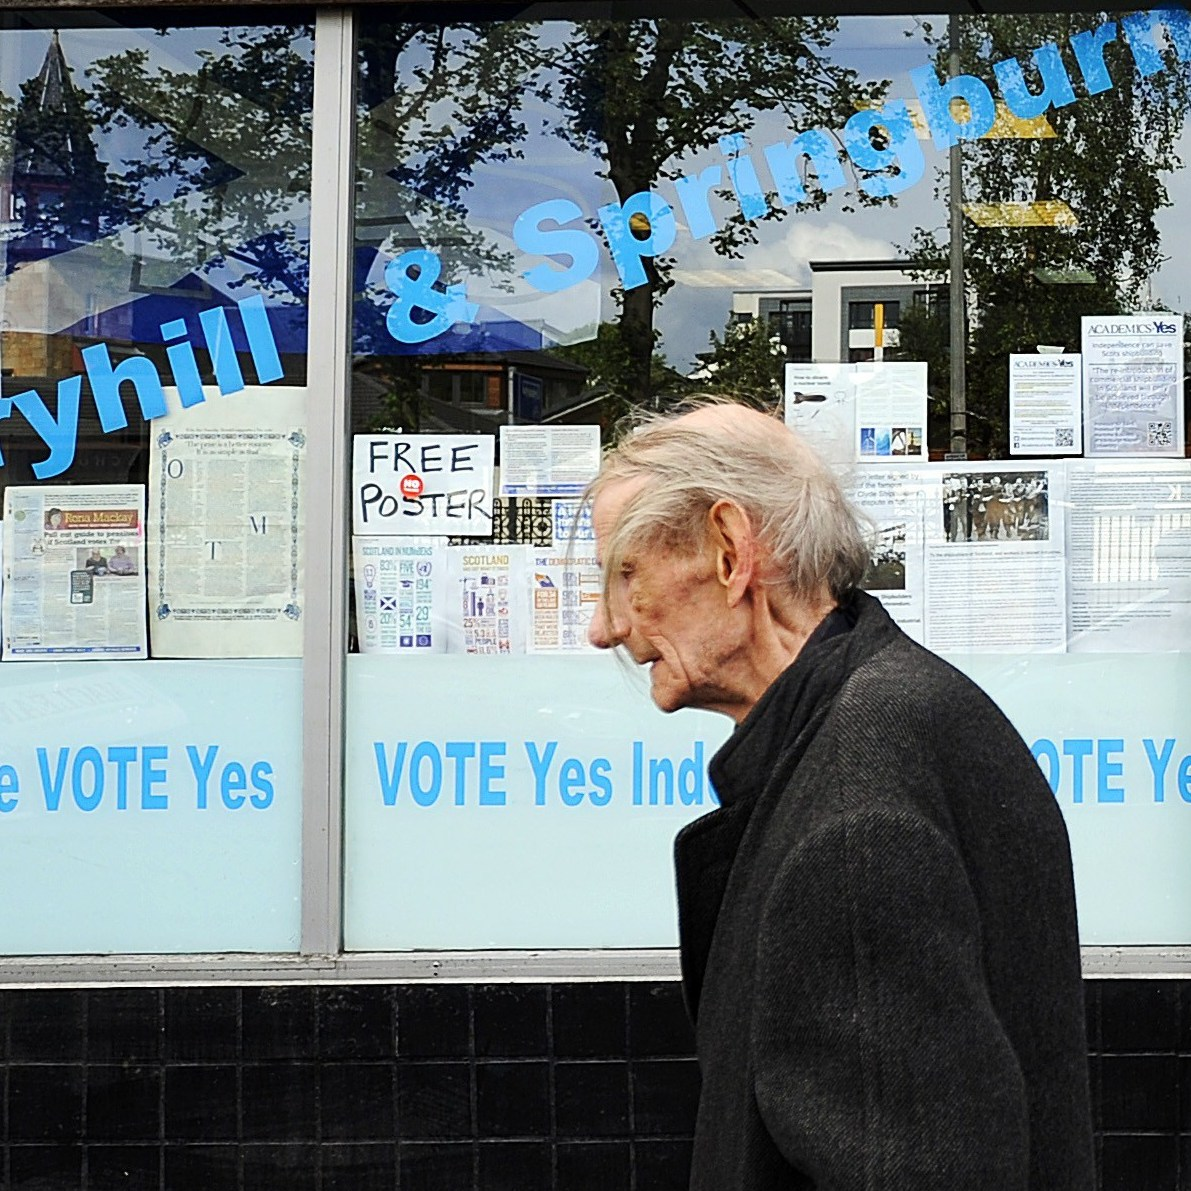 A pedestrian walks past the Yes Scotland campaign office in Glasgow on Aug. 19, ahead of the upcoming referendum on independence which will be held on Sept. 18. A majority of English people oppose Scotland continuing to use the pound if it votes to become independent.